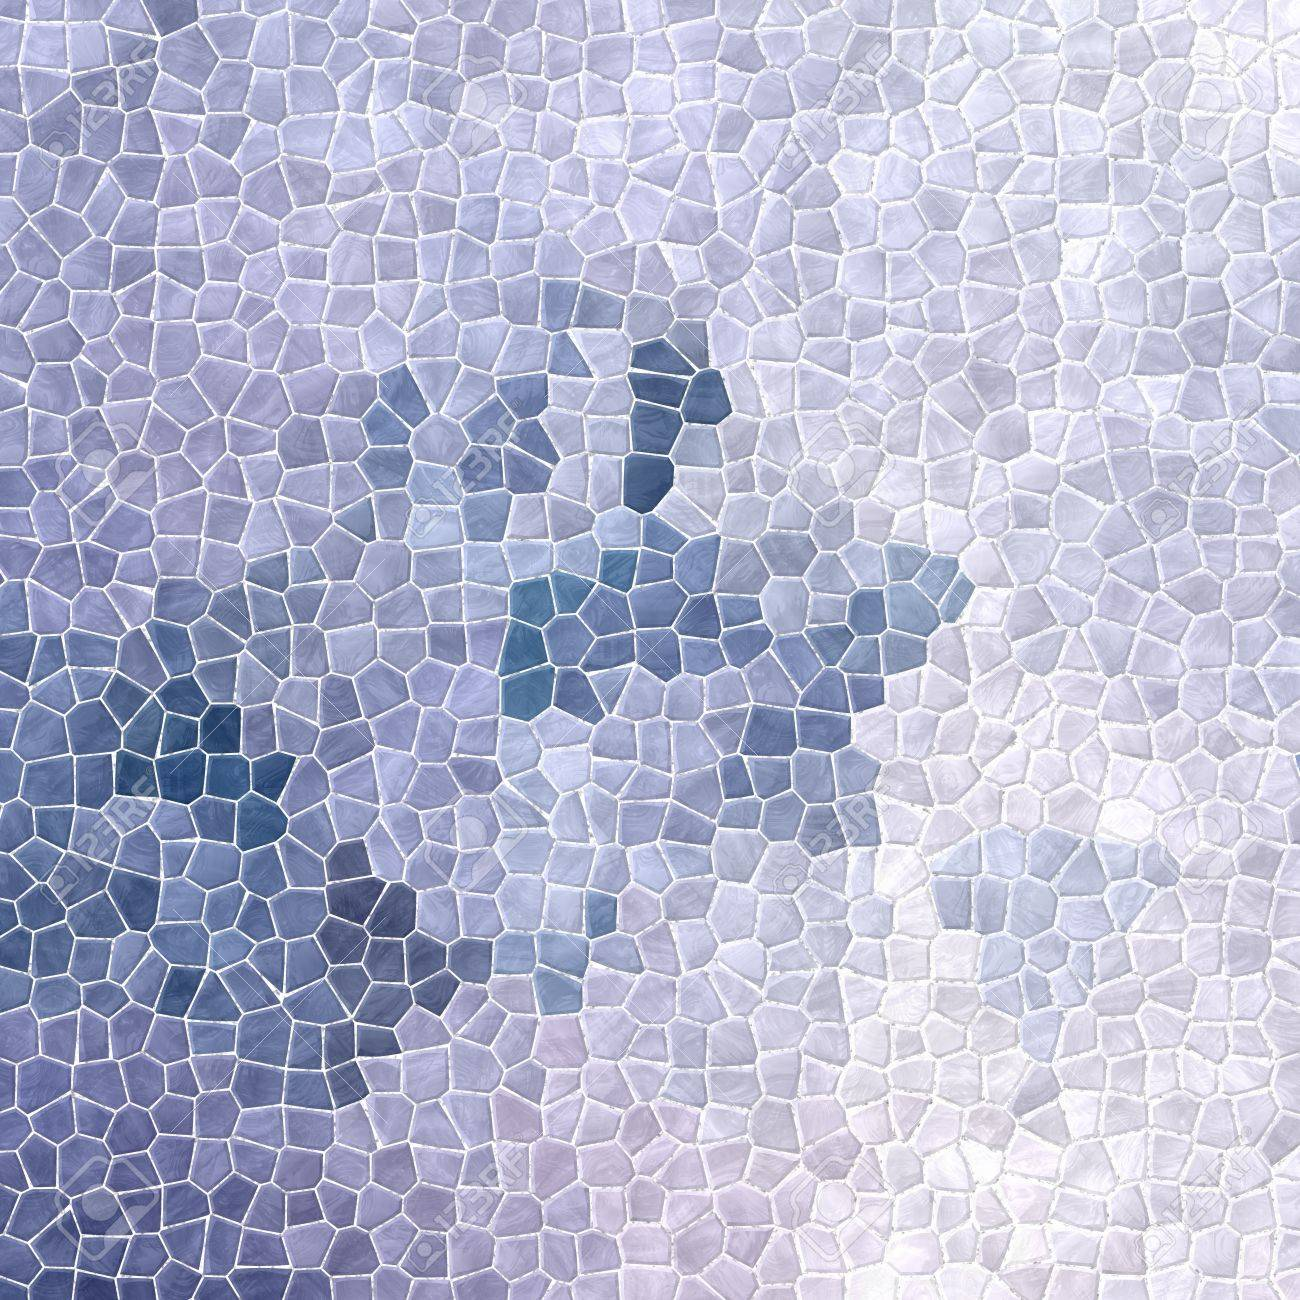 Abstract Nature Marble Plastic Stony Mosaic Tiles Texture Background ...